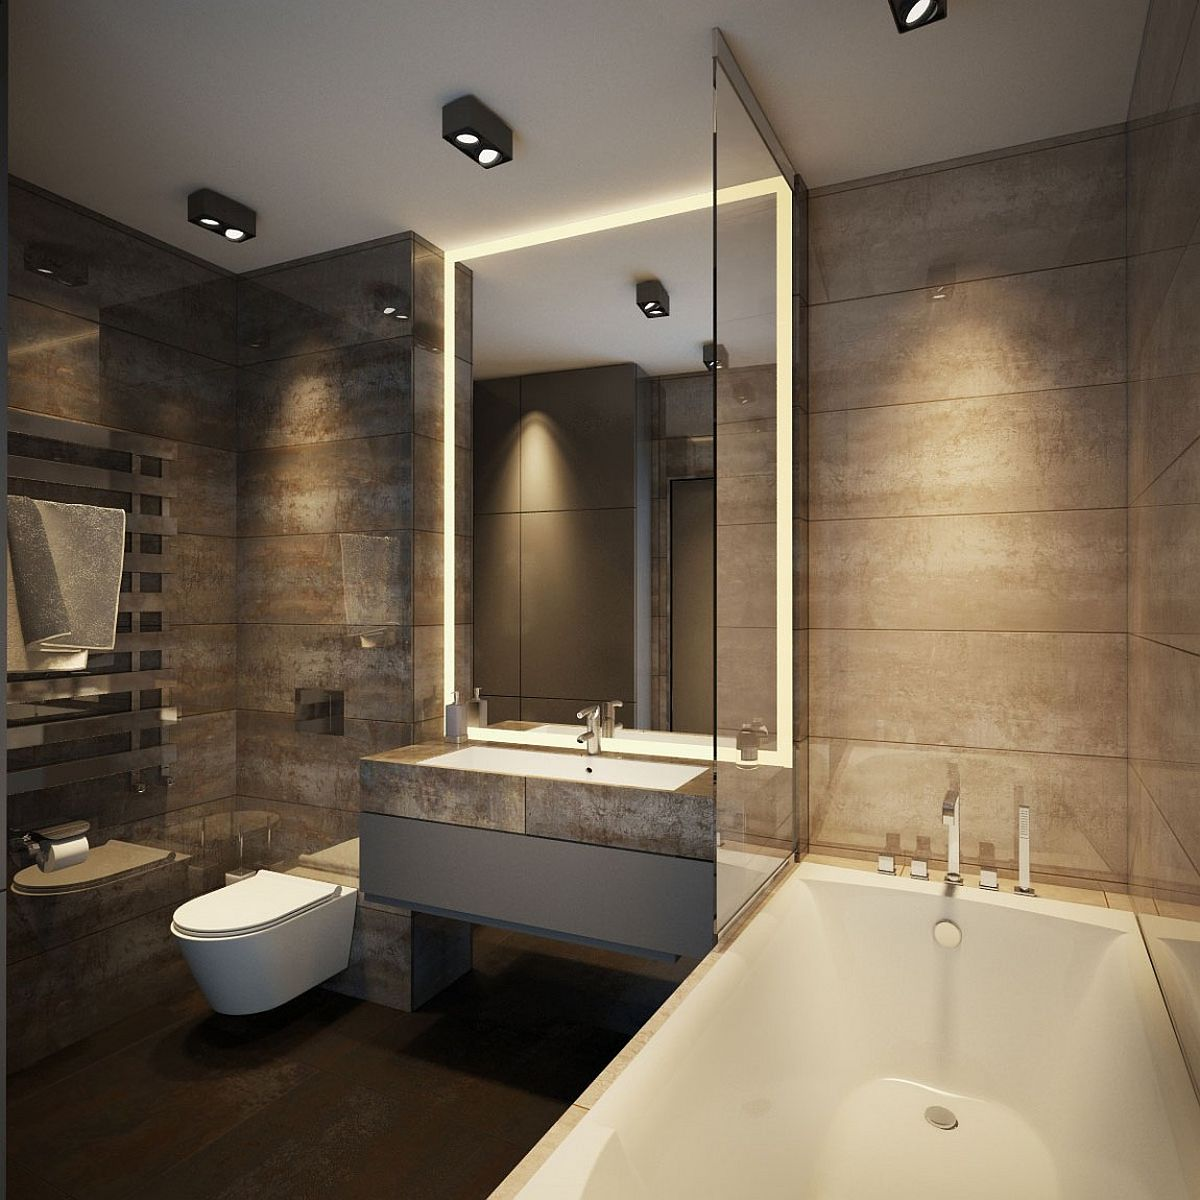 Bathroom Design Ideas: Apartment Ernst In Kiev: Inspired By Posh Hotel Ambiance